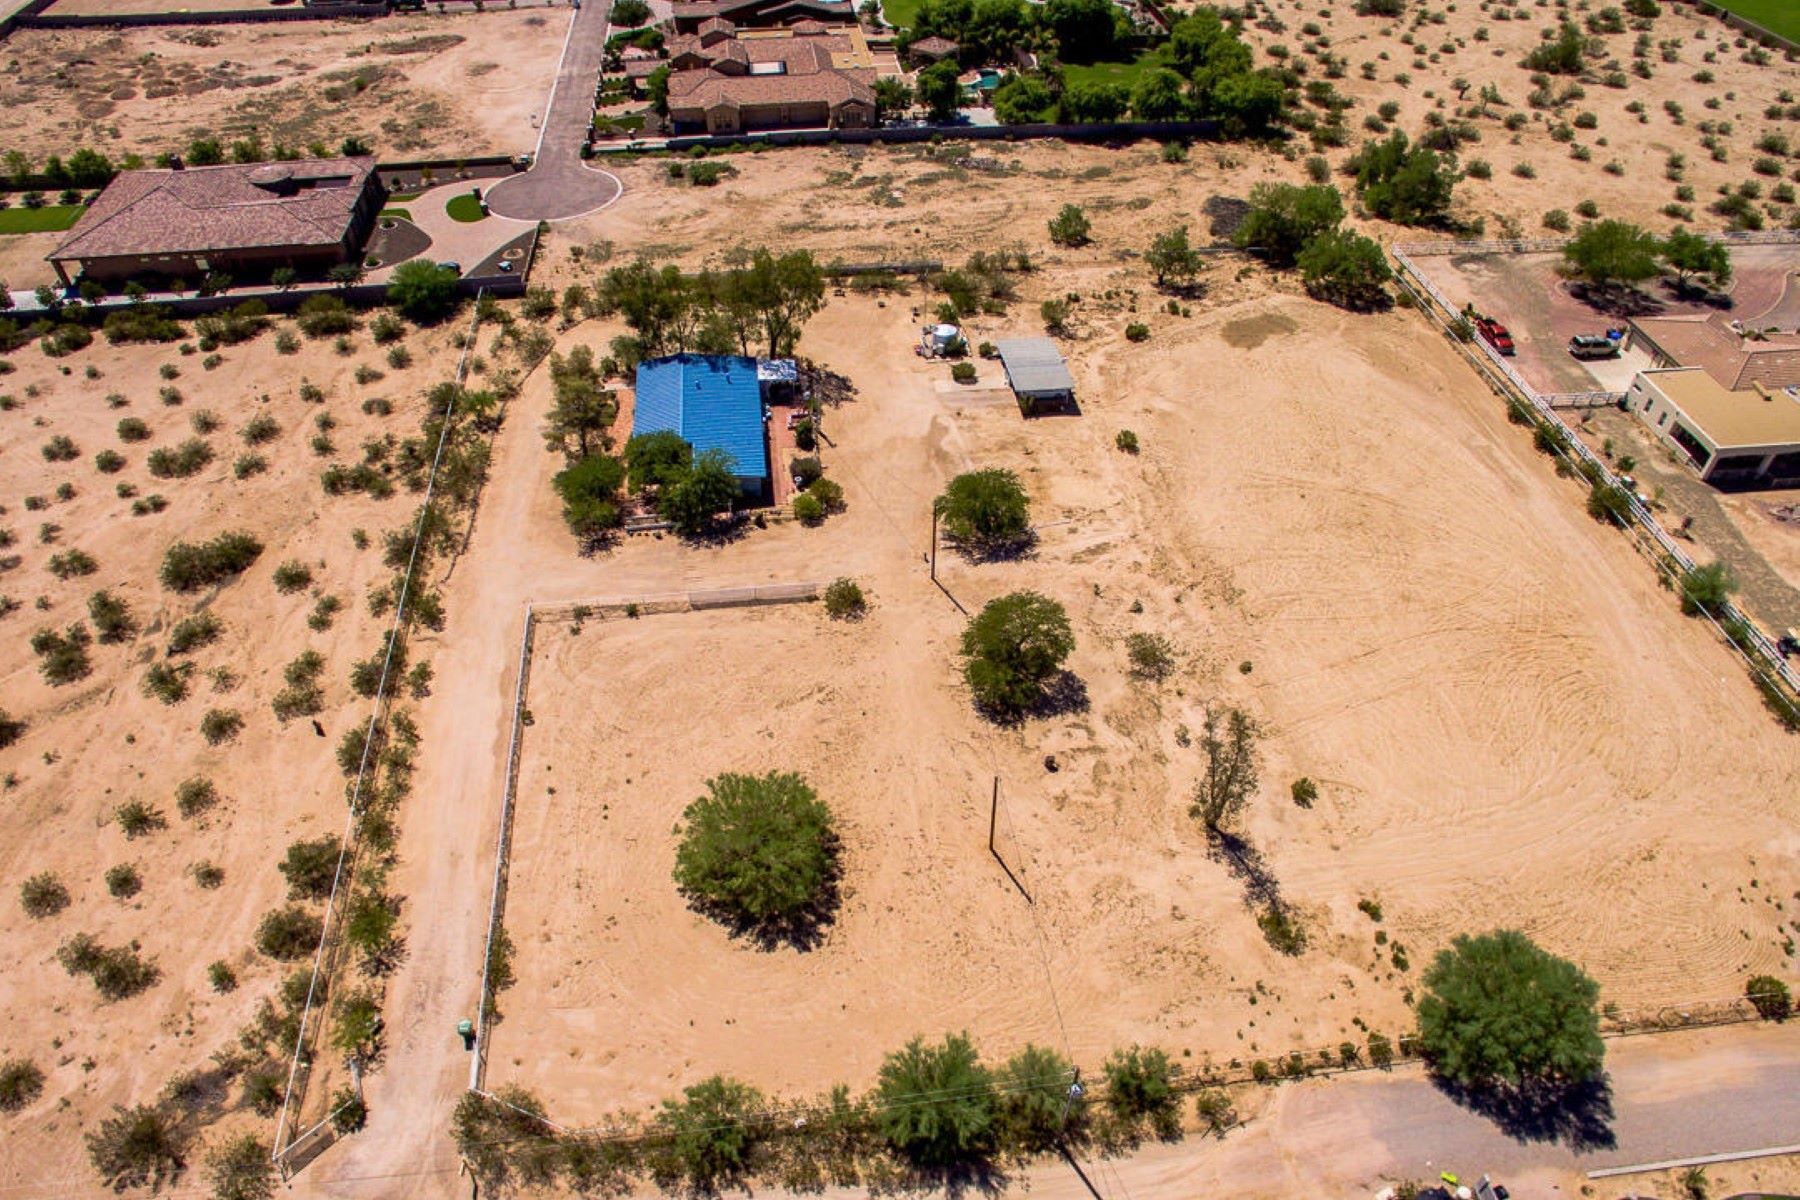 Land for Sale at No HOA Lot! 26415 S 170th St Queen Creek, Arizona 85142 United States